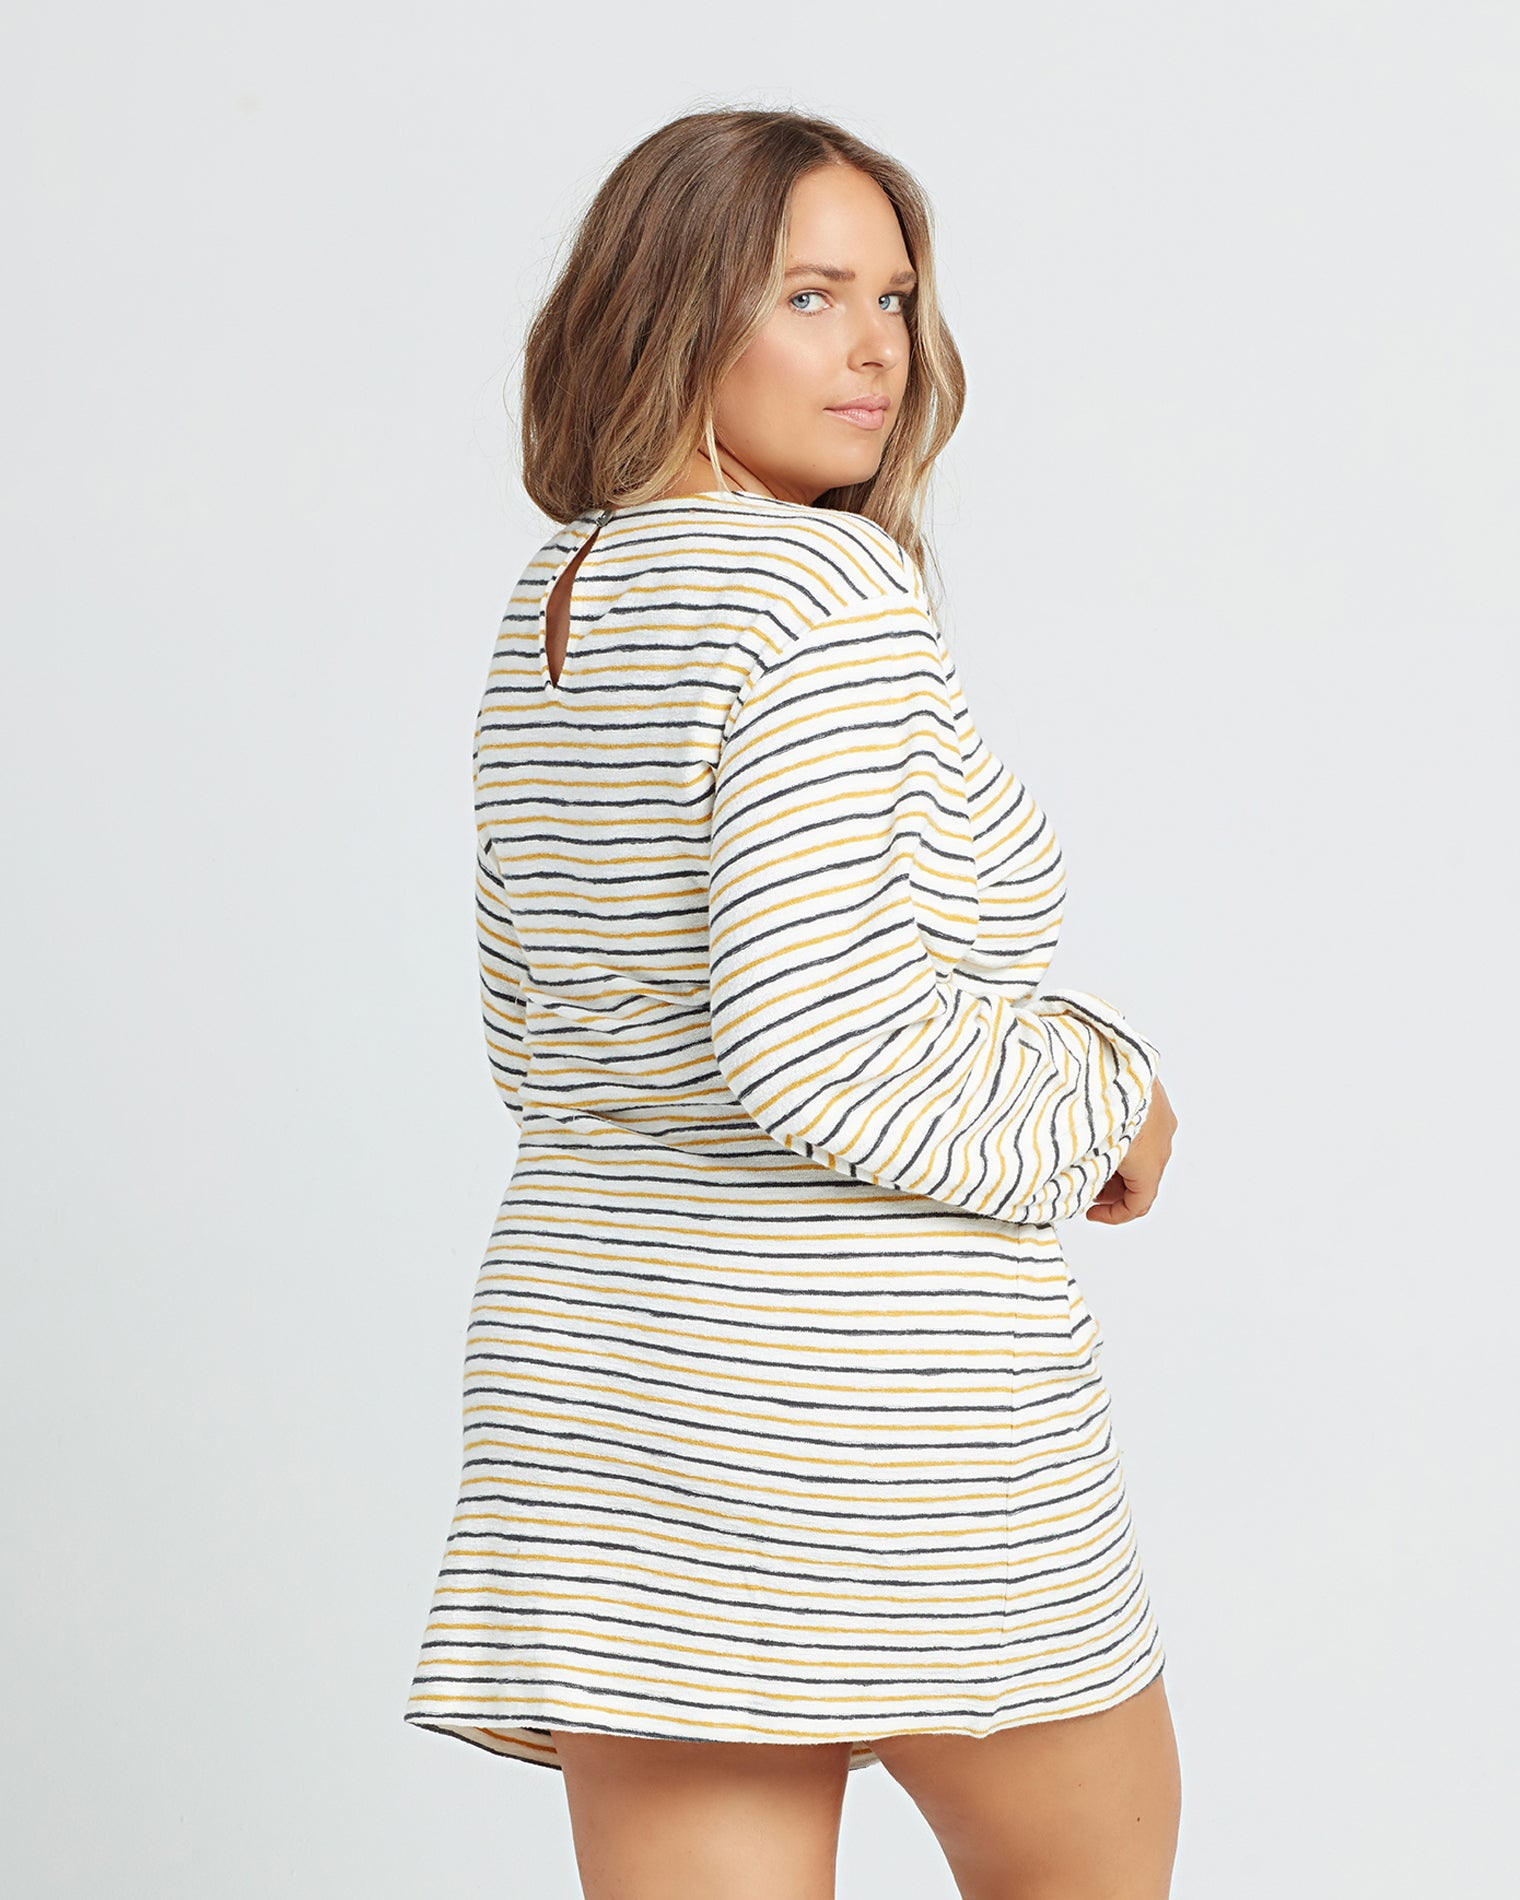 Surf's Up Stripe | Model: Ali (size: XL)